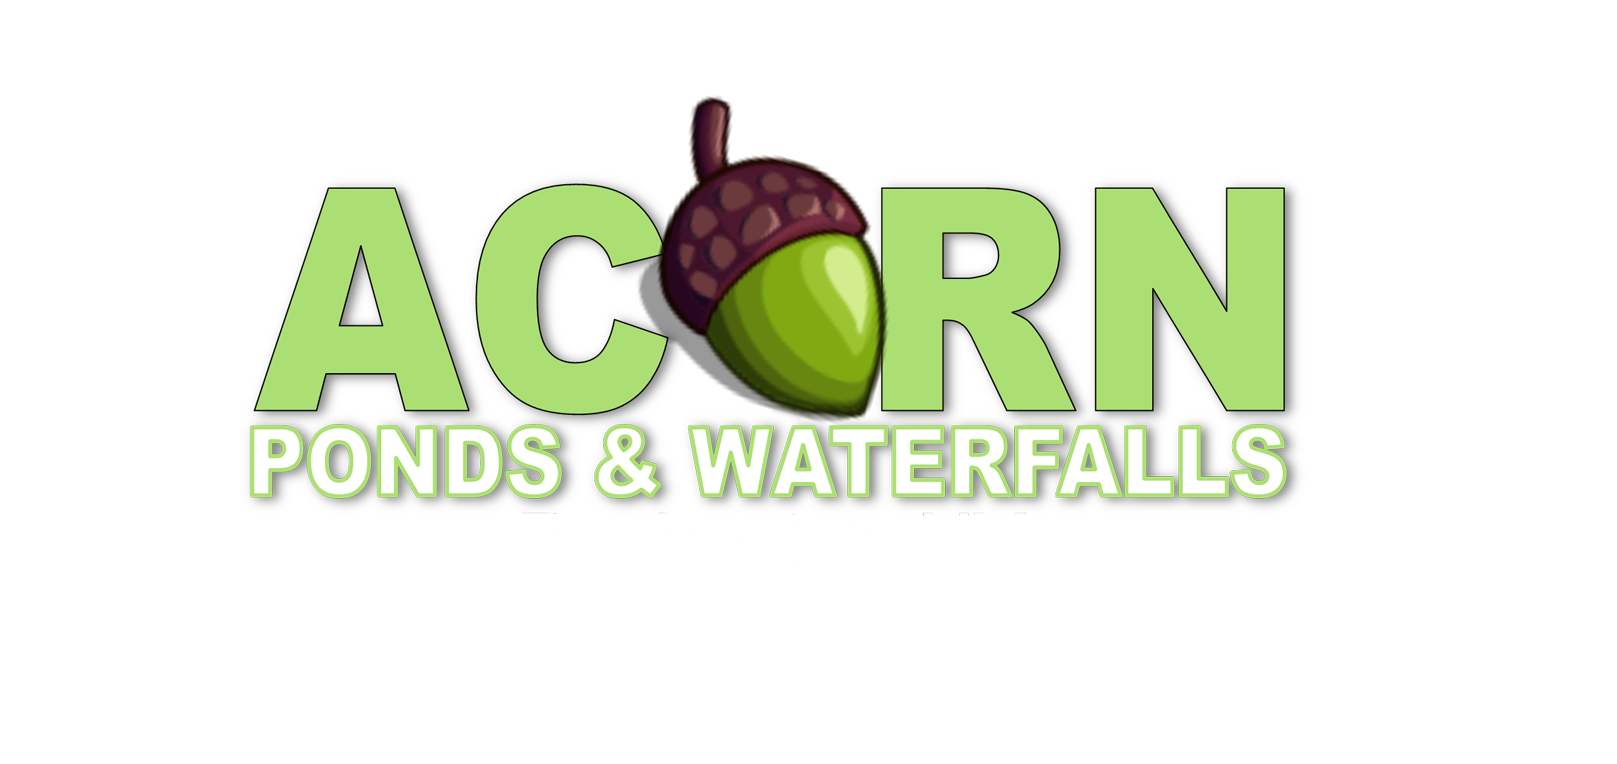 Koi Pond & Pondless Water Feature-Waterfall Service Company Rochester NY - Acorn Ponds & Waterfalls